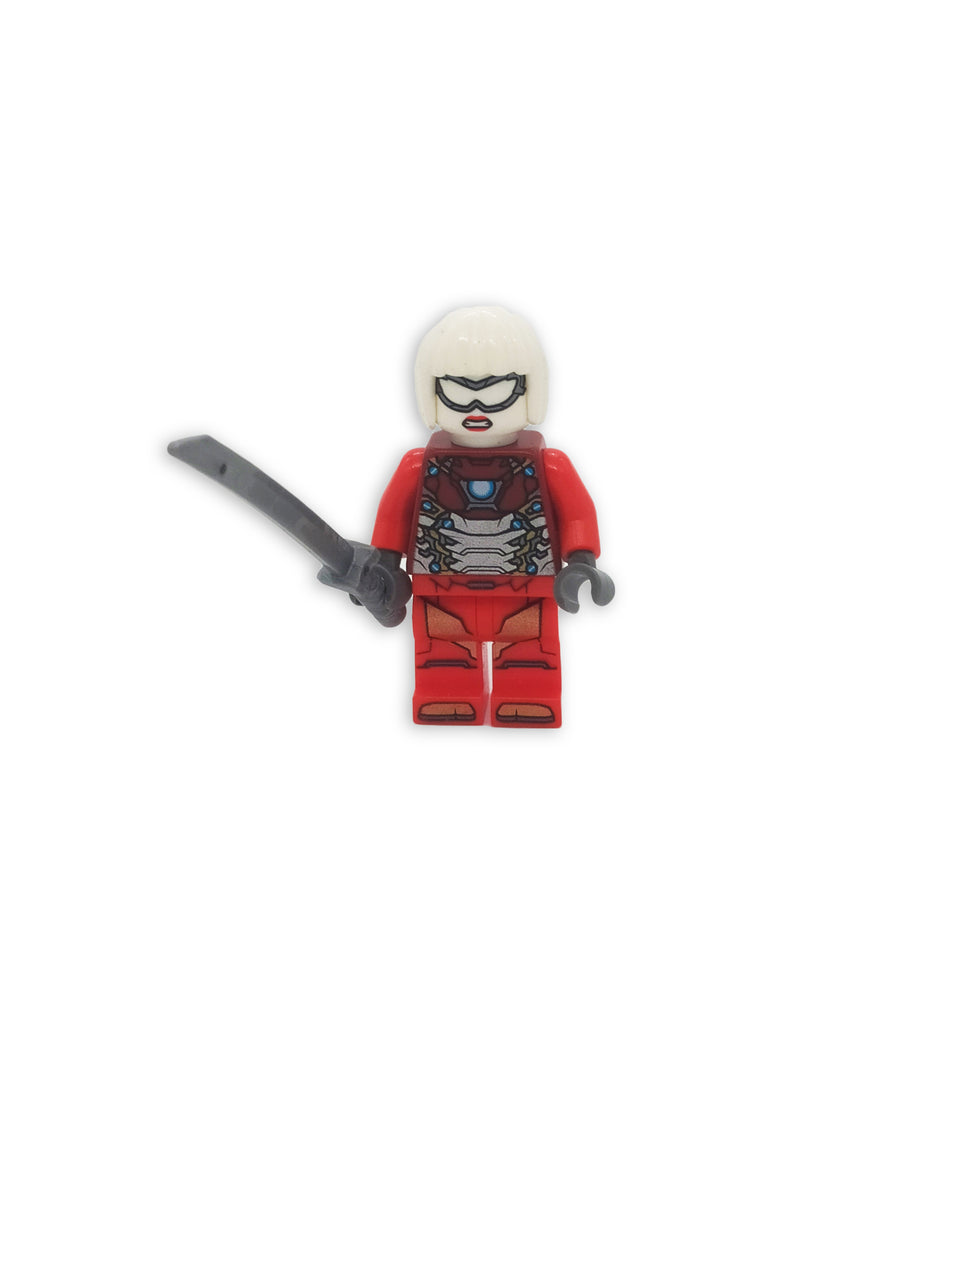 Playmobil Scary Figure